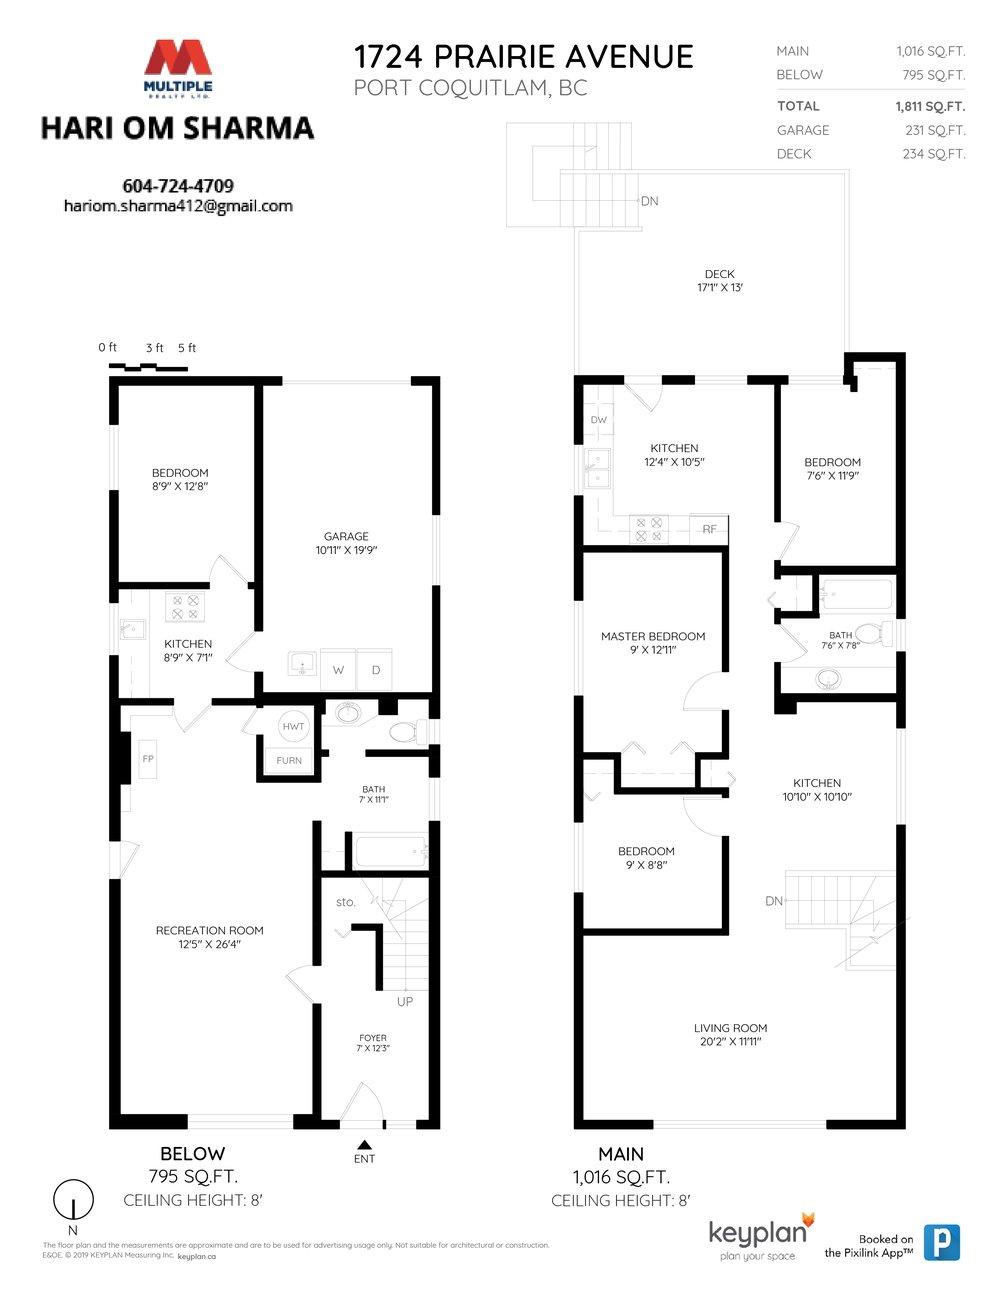 Floor Plan for a 4 Bedroom House in